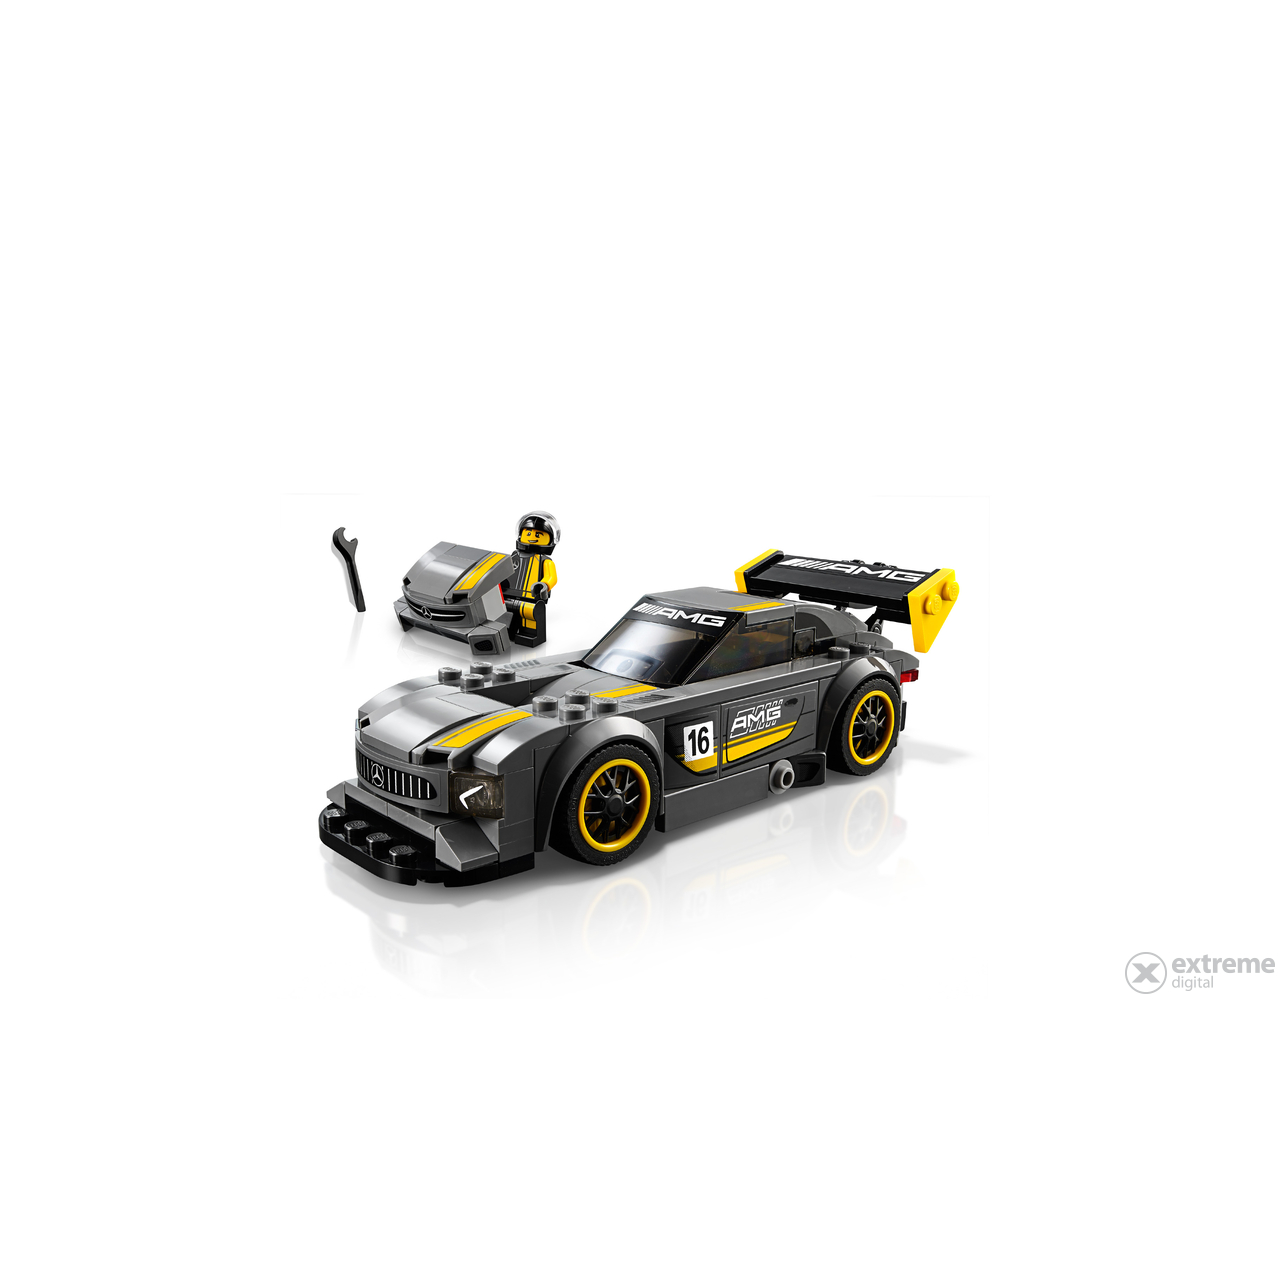 lego speed champions mercedes amg gt3 75877 extreme digital. Black Bedroom Furniture Sets. Home Design Ideas